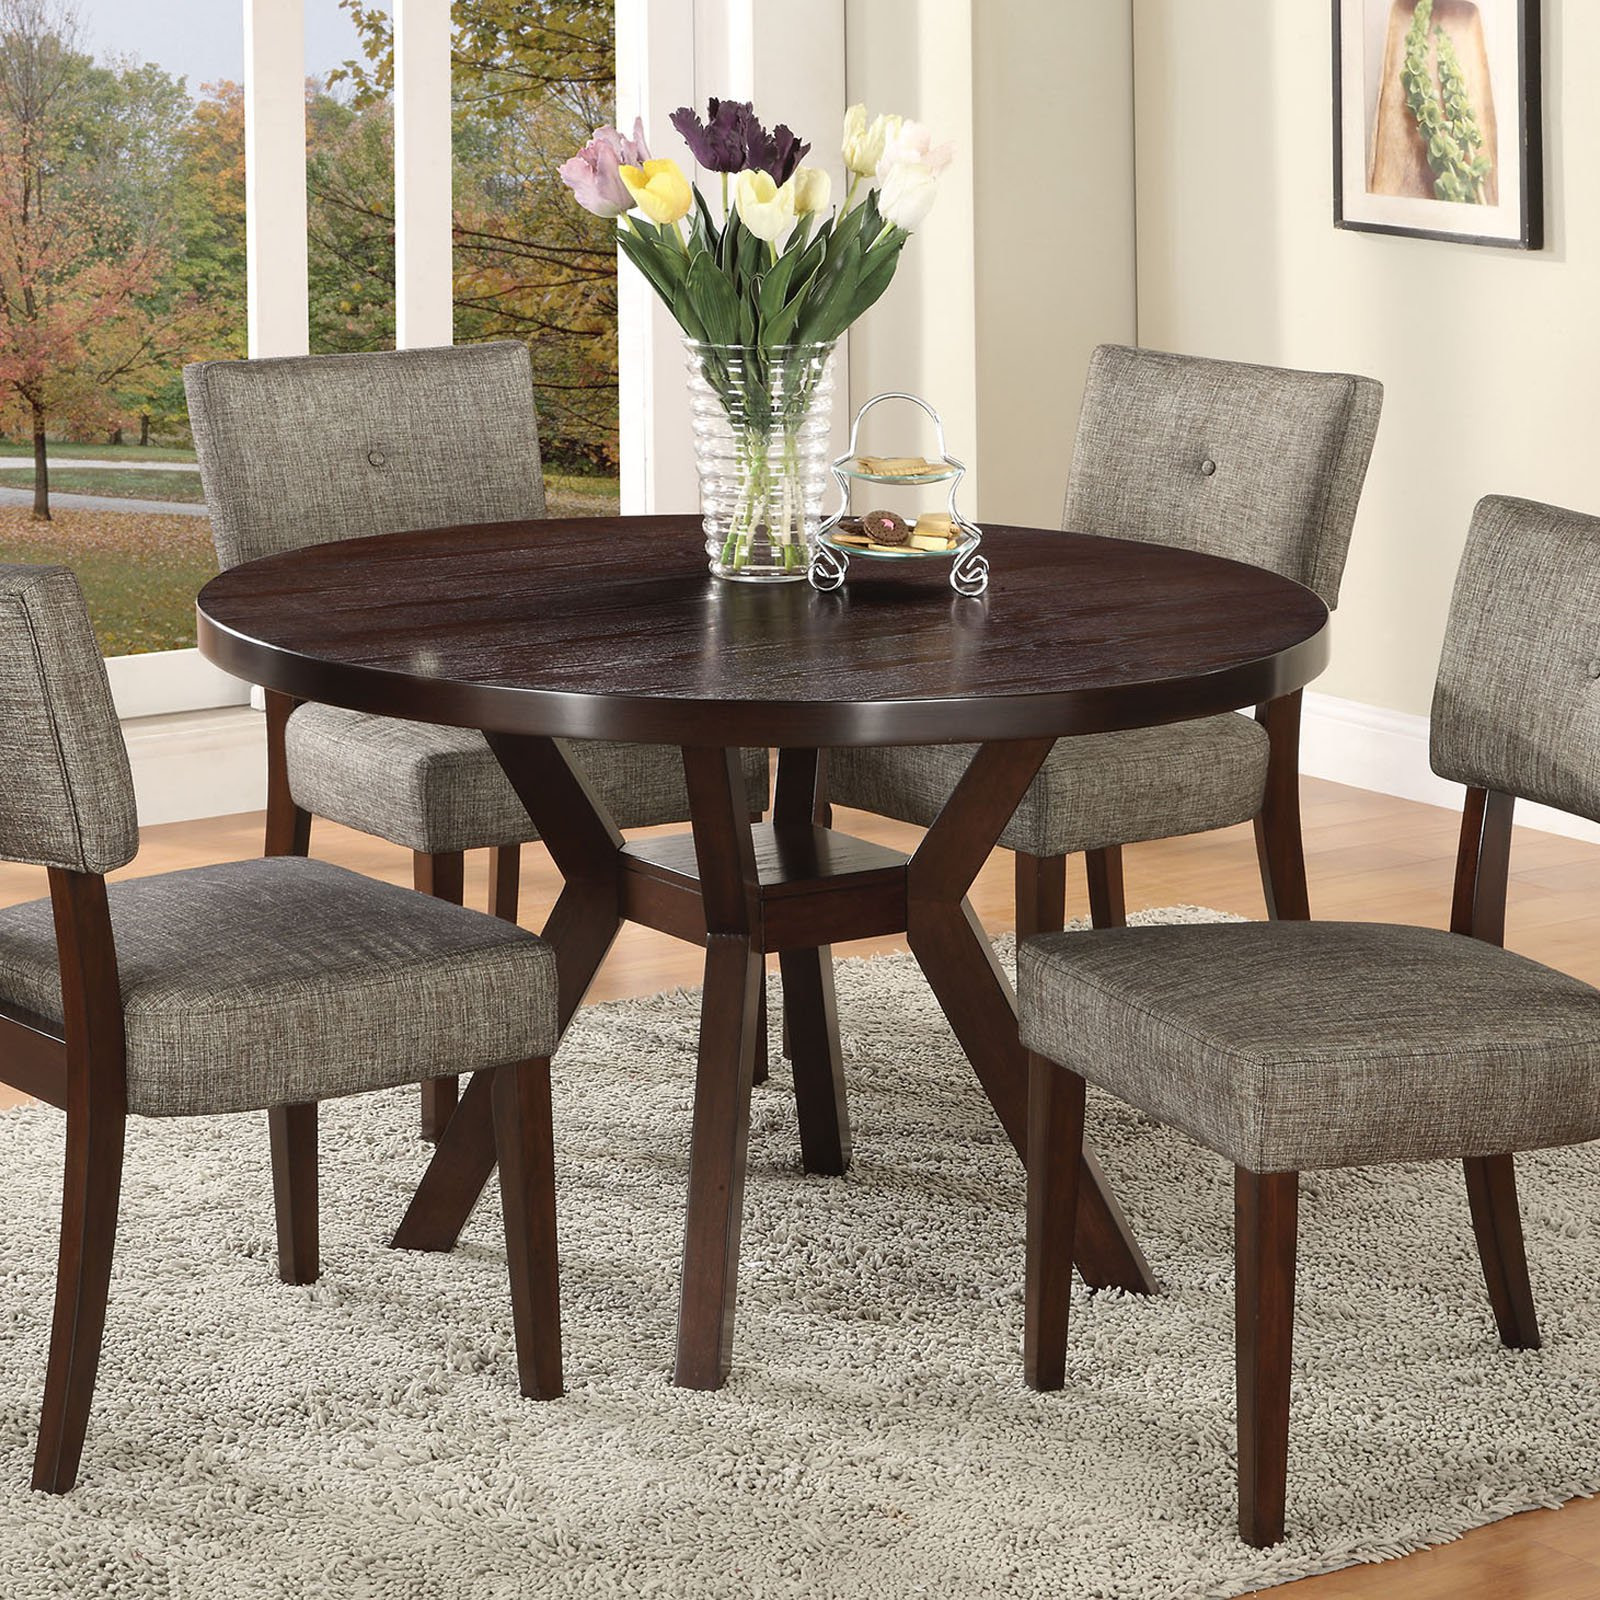 Small Kitchen Table Set Round kitchen table bramble hill extendable dining table round round kitchen table acme drake dining table espresso round kitchen table workwithnaturefo